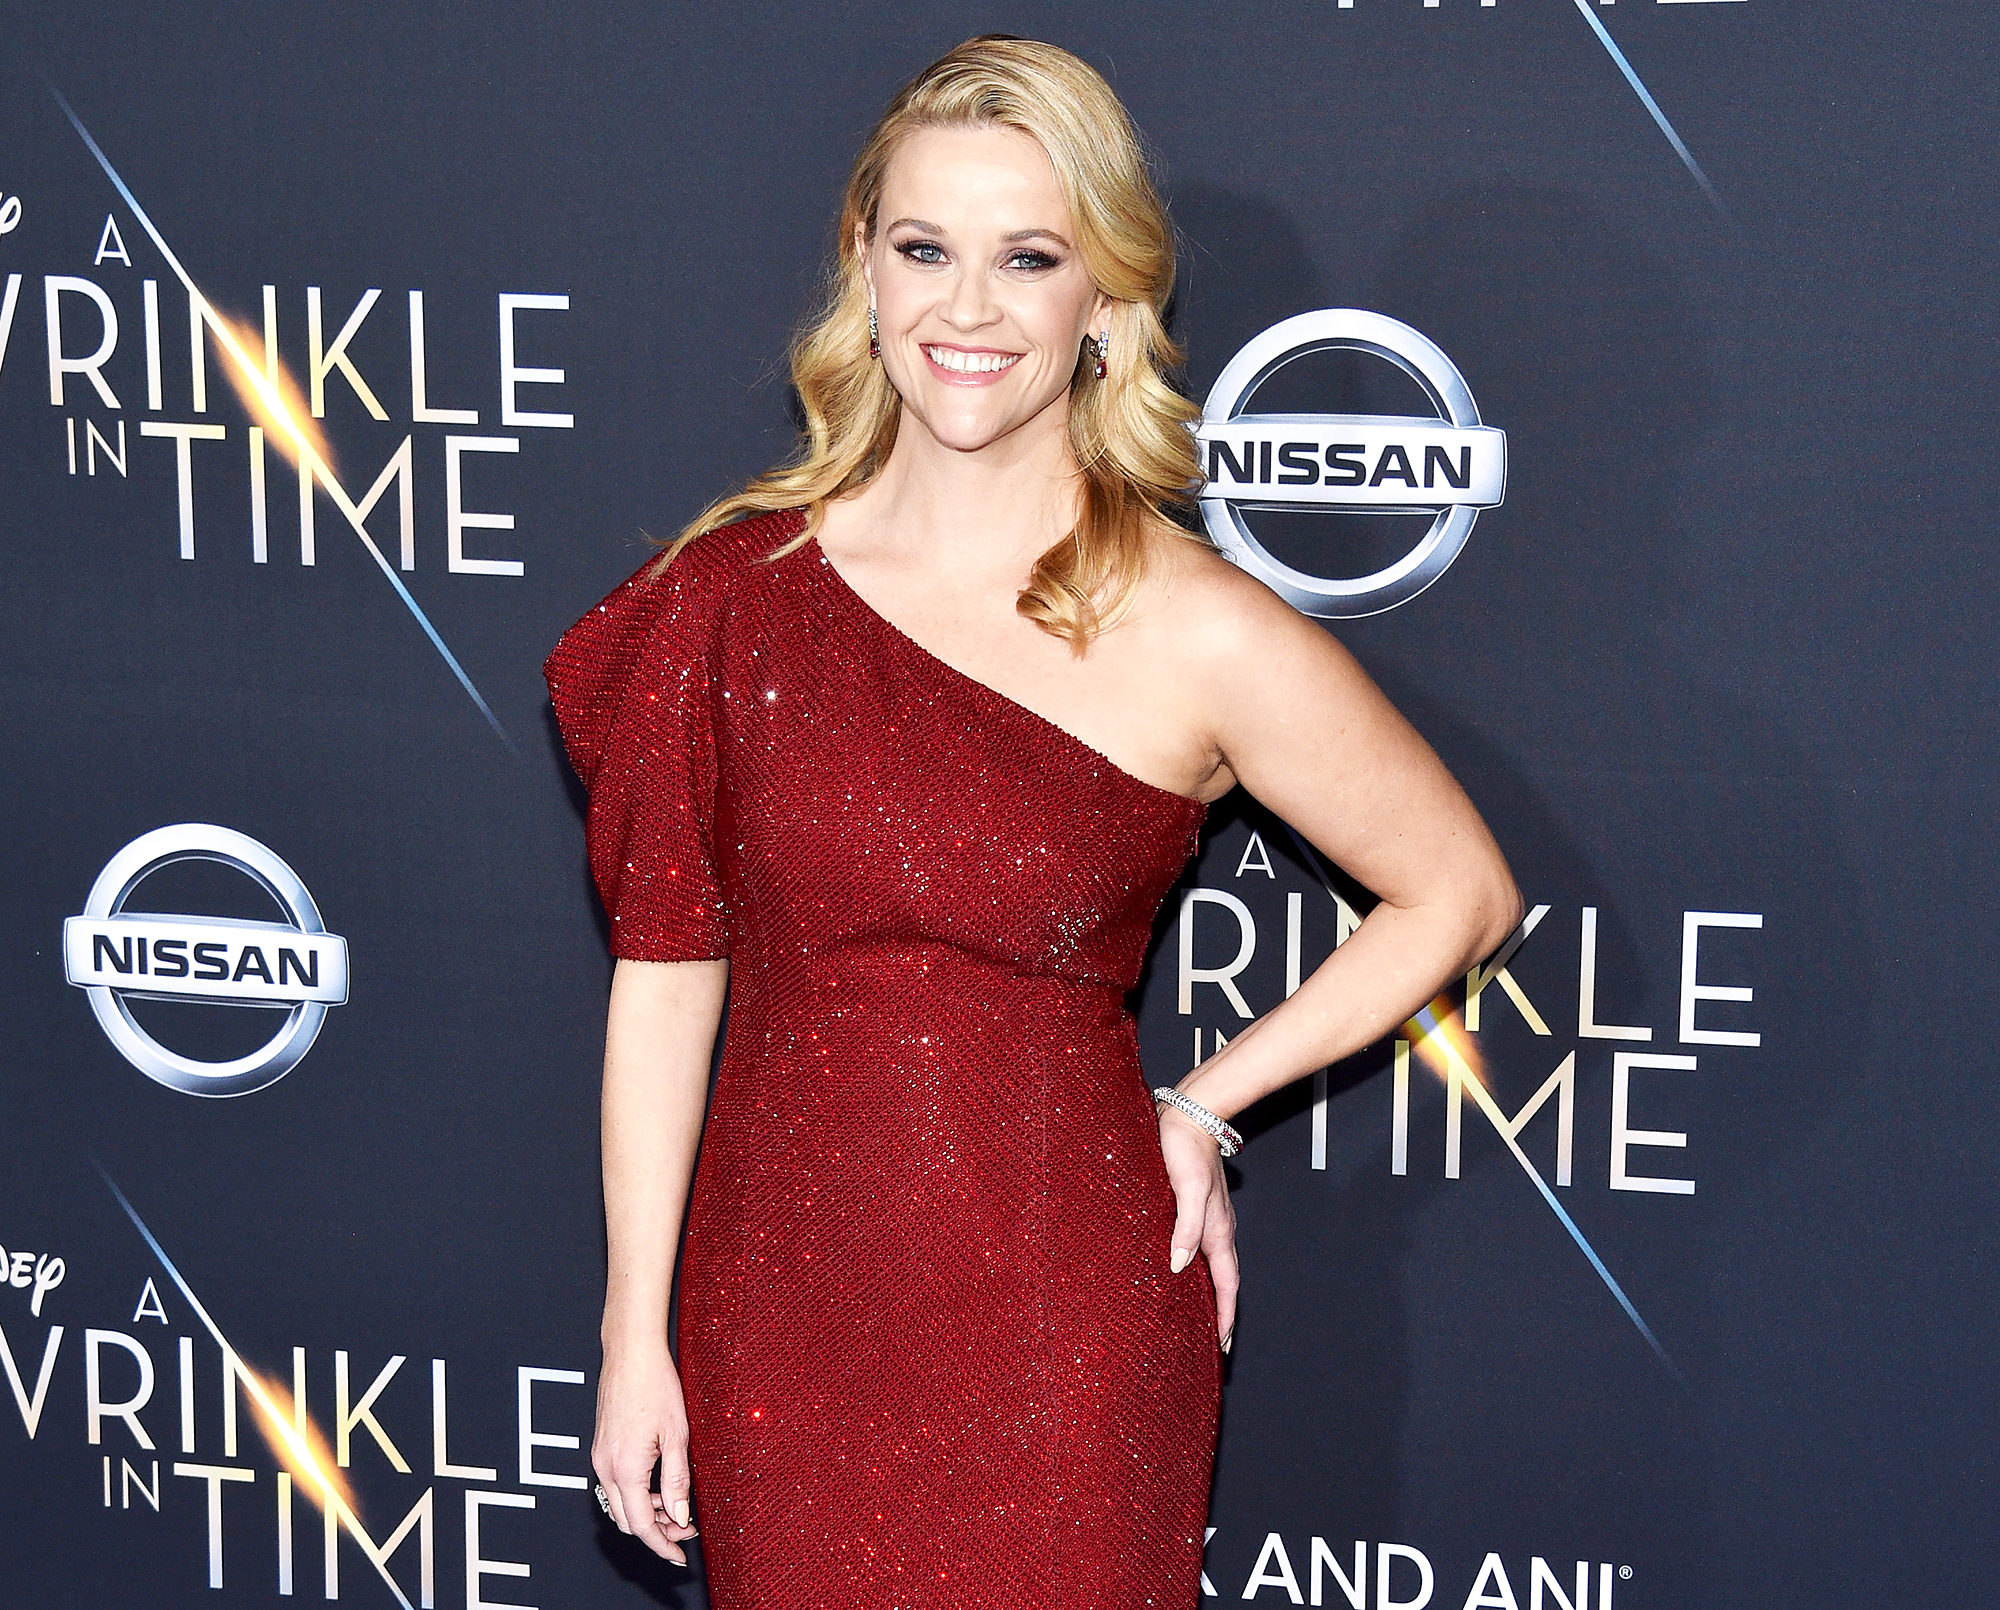 Reese Witherspoon Confirms 'Legally Blonde 3' With Pink Bikini Clip